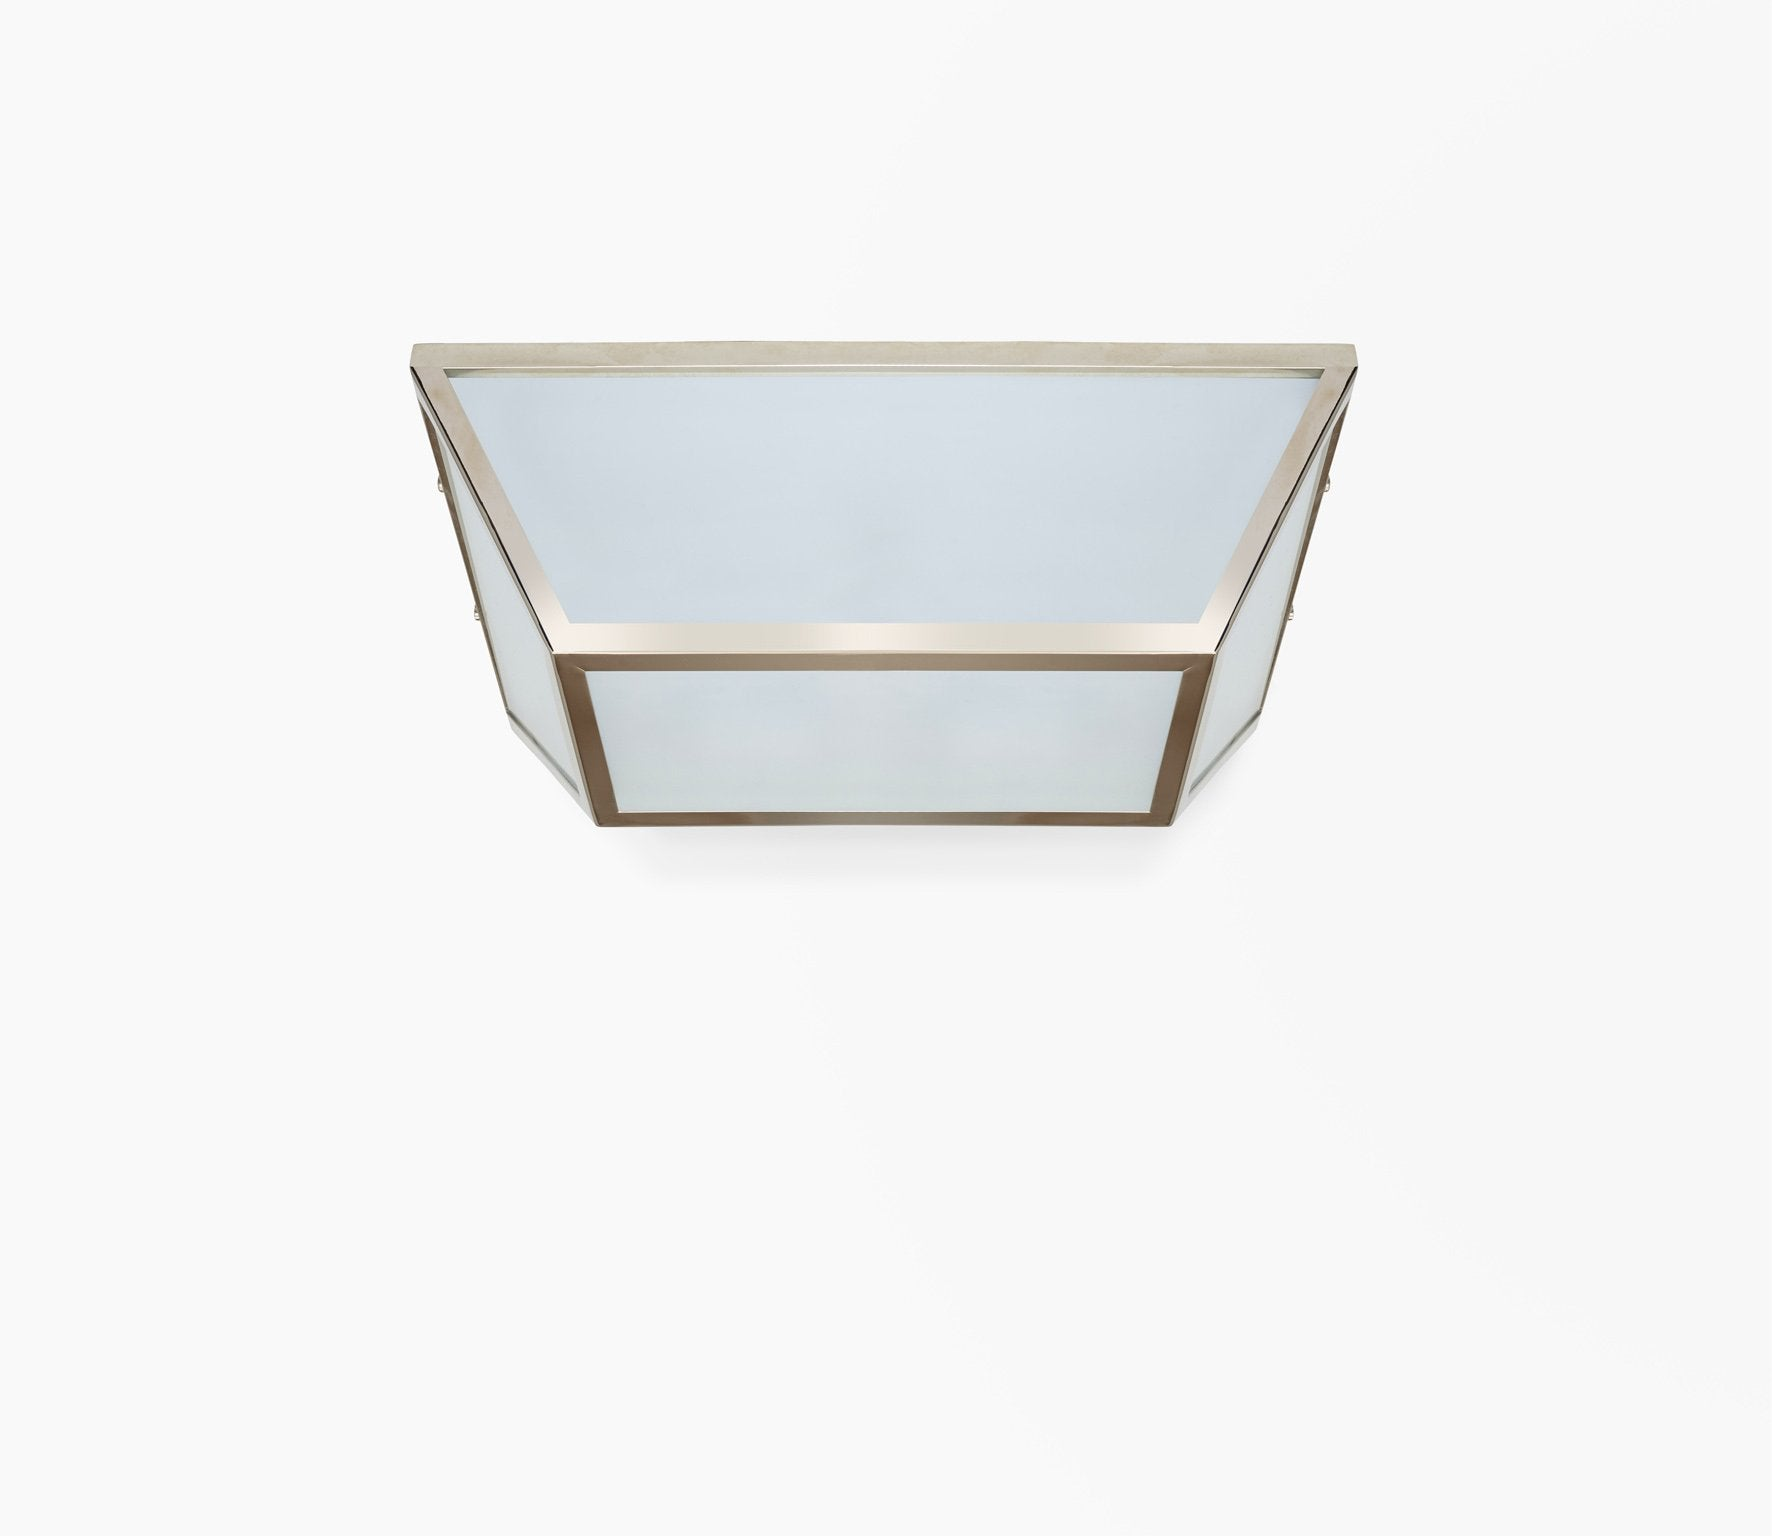 Strand Ceiling Light Product Image 3